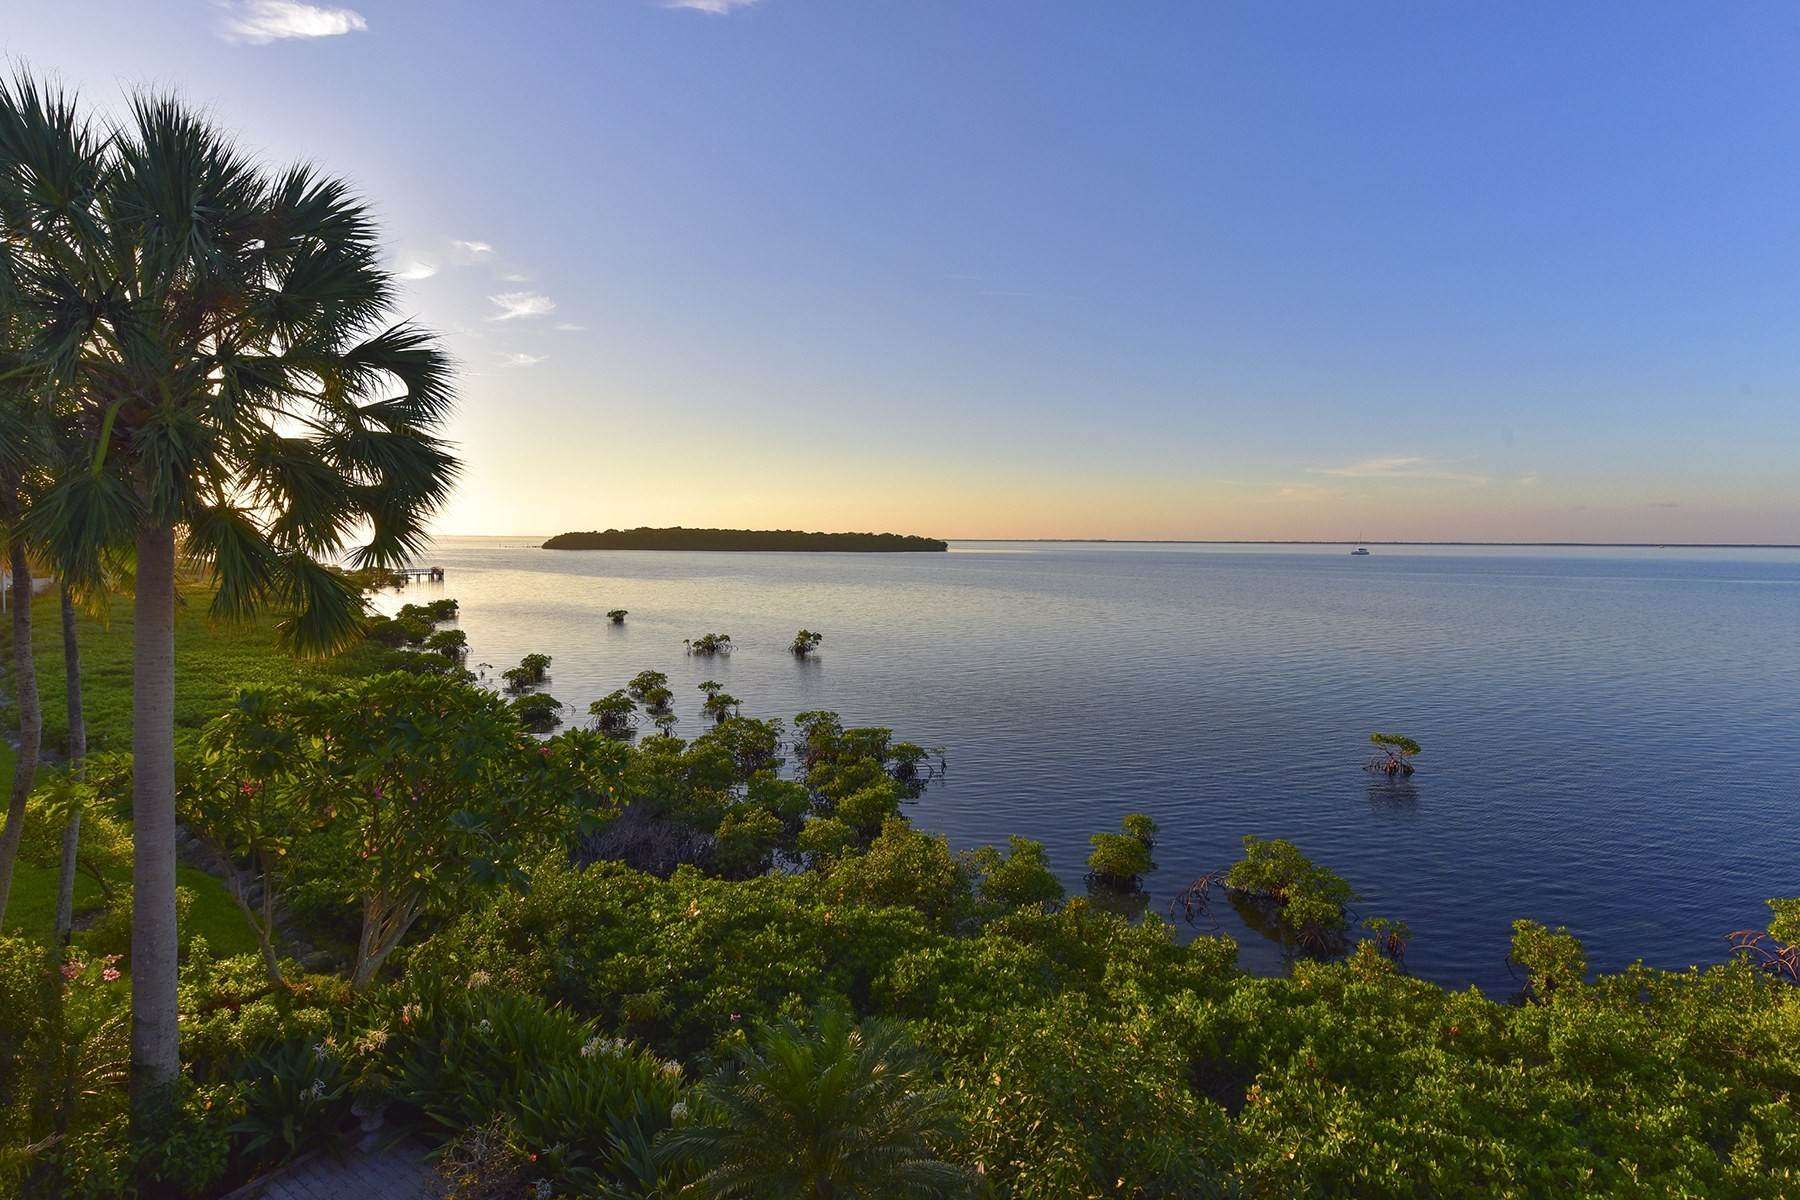 2. Property for Sale at Pumpkin Key - Private Island, Key Largo, FL Key Largo, Florida 33037 United States